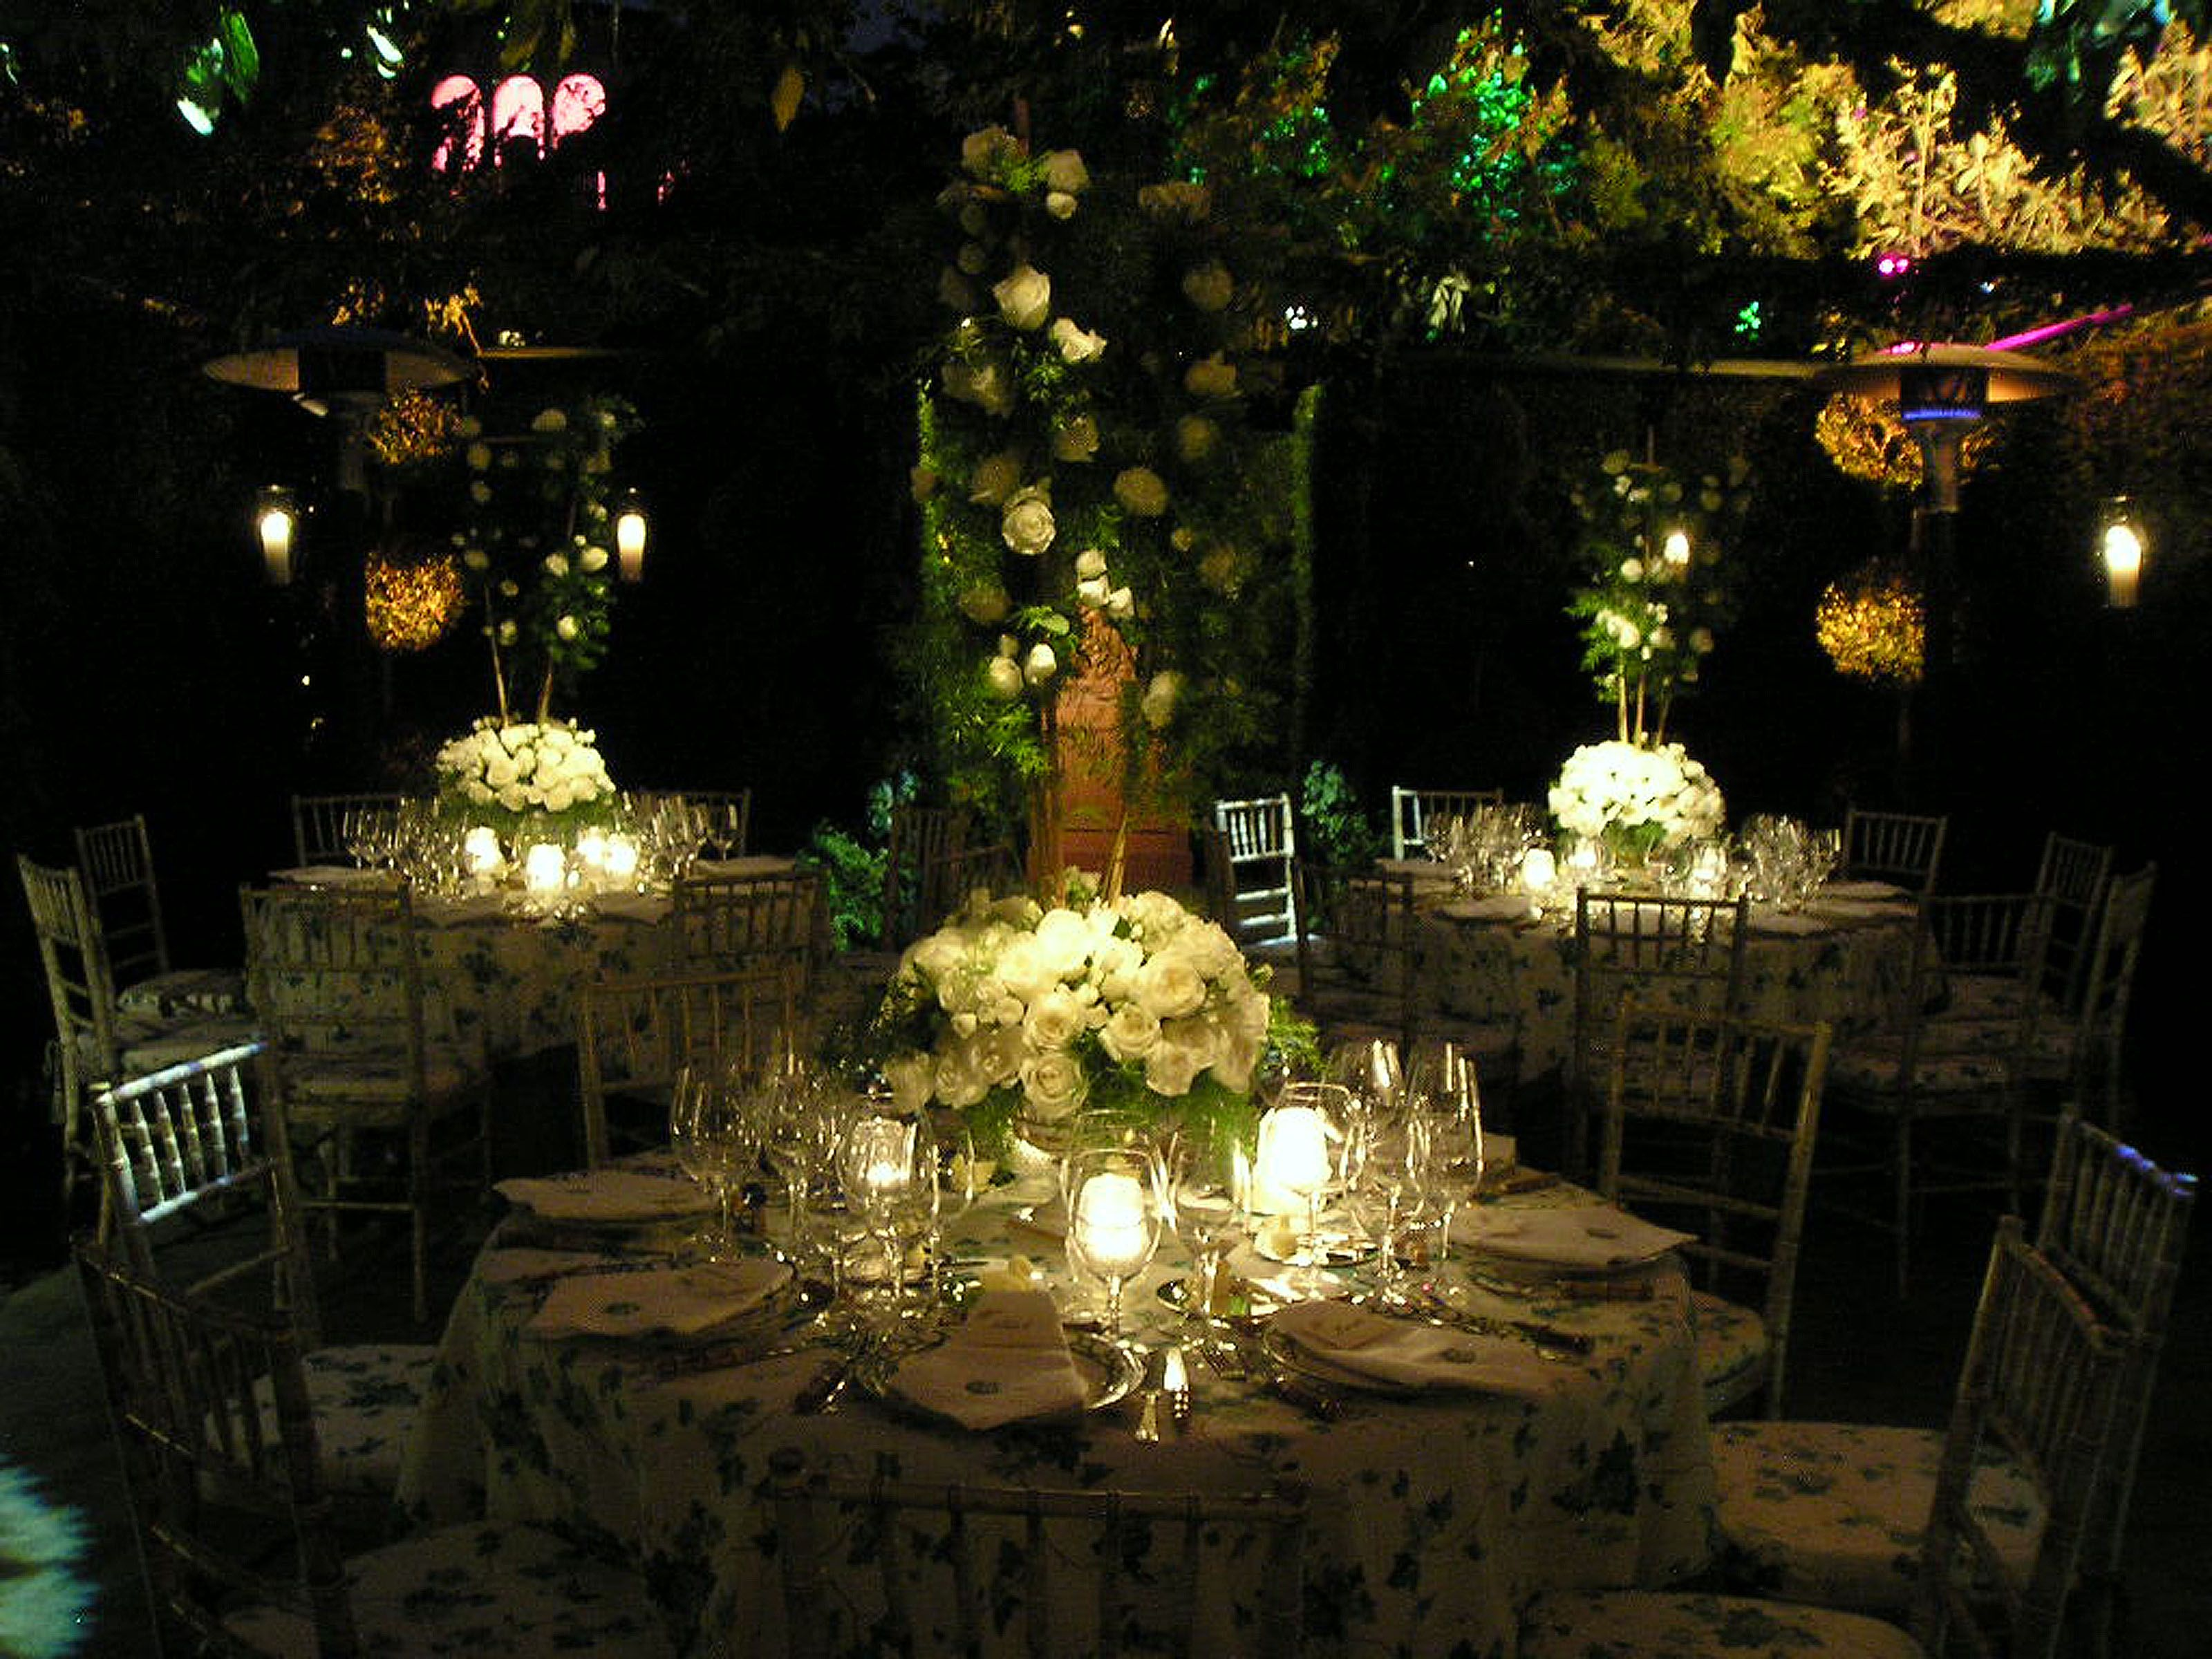 lighting decorations for weddings. Outdoor Weddings Do Yourself Ideas | Fariasdinnerinthegarden016 Effective Event Lighting Decorations For I